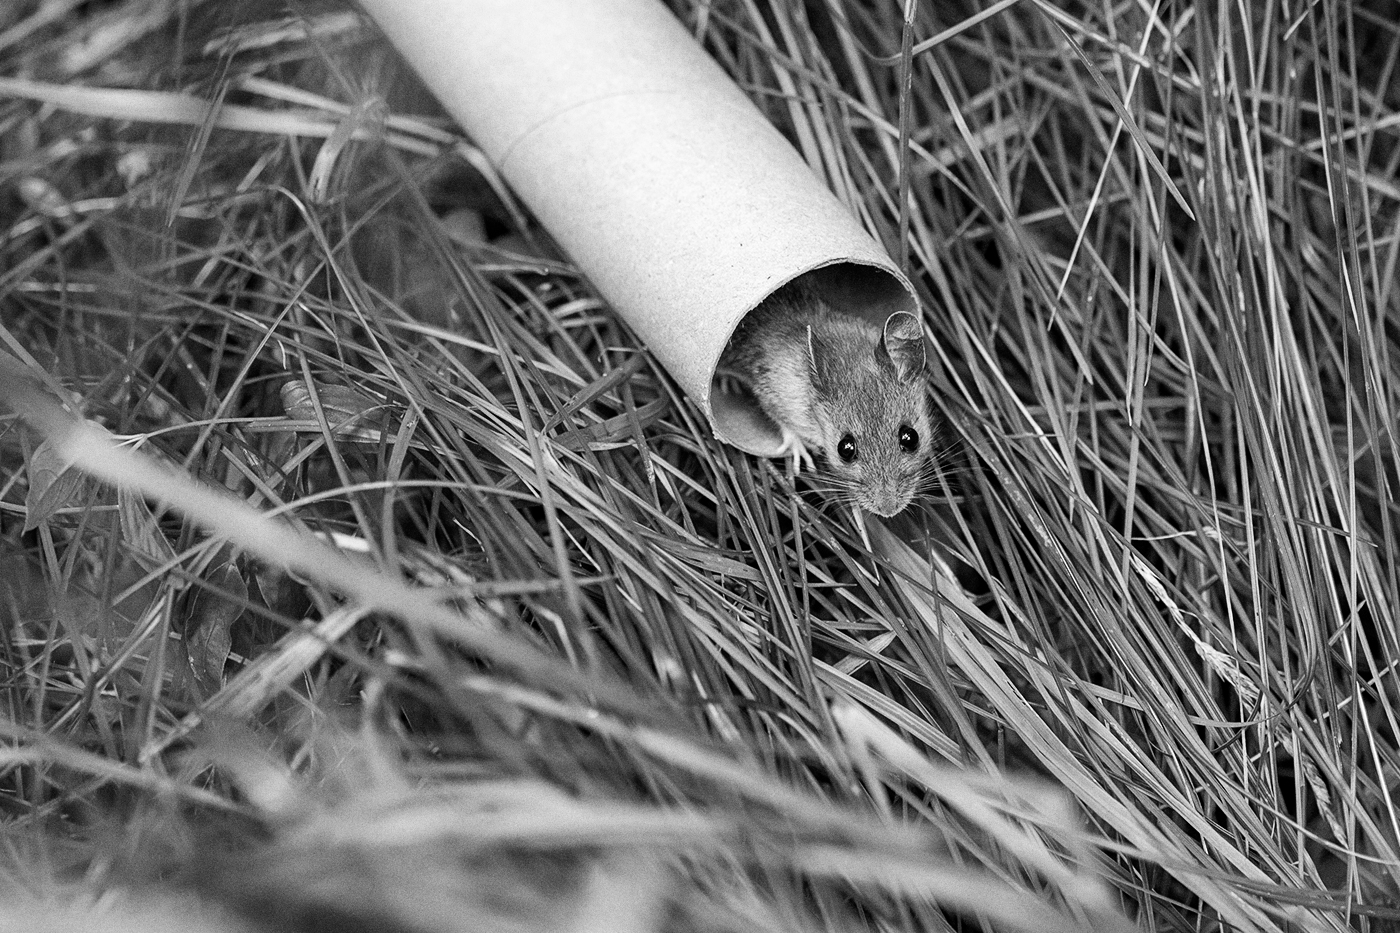 A field mouse in a cardboard tube.